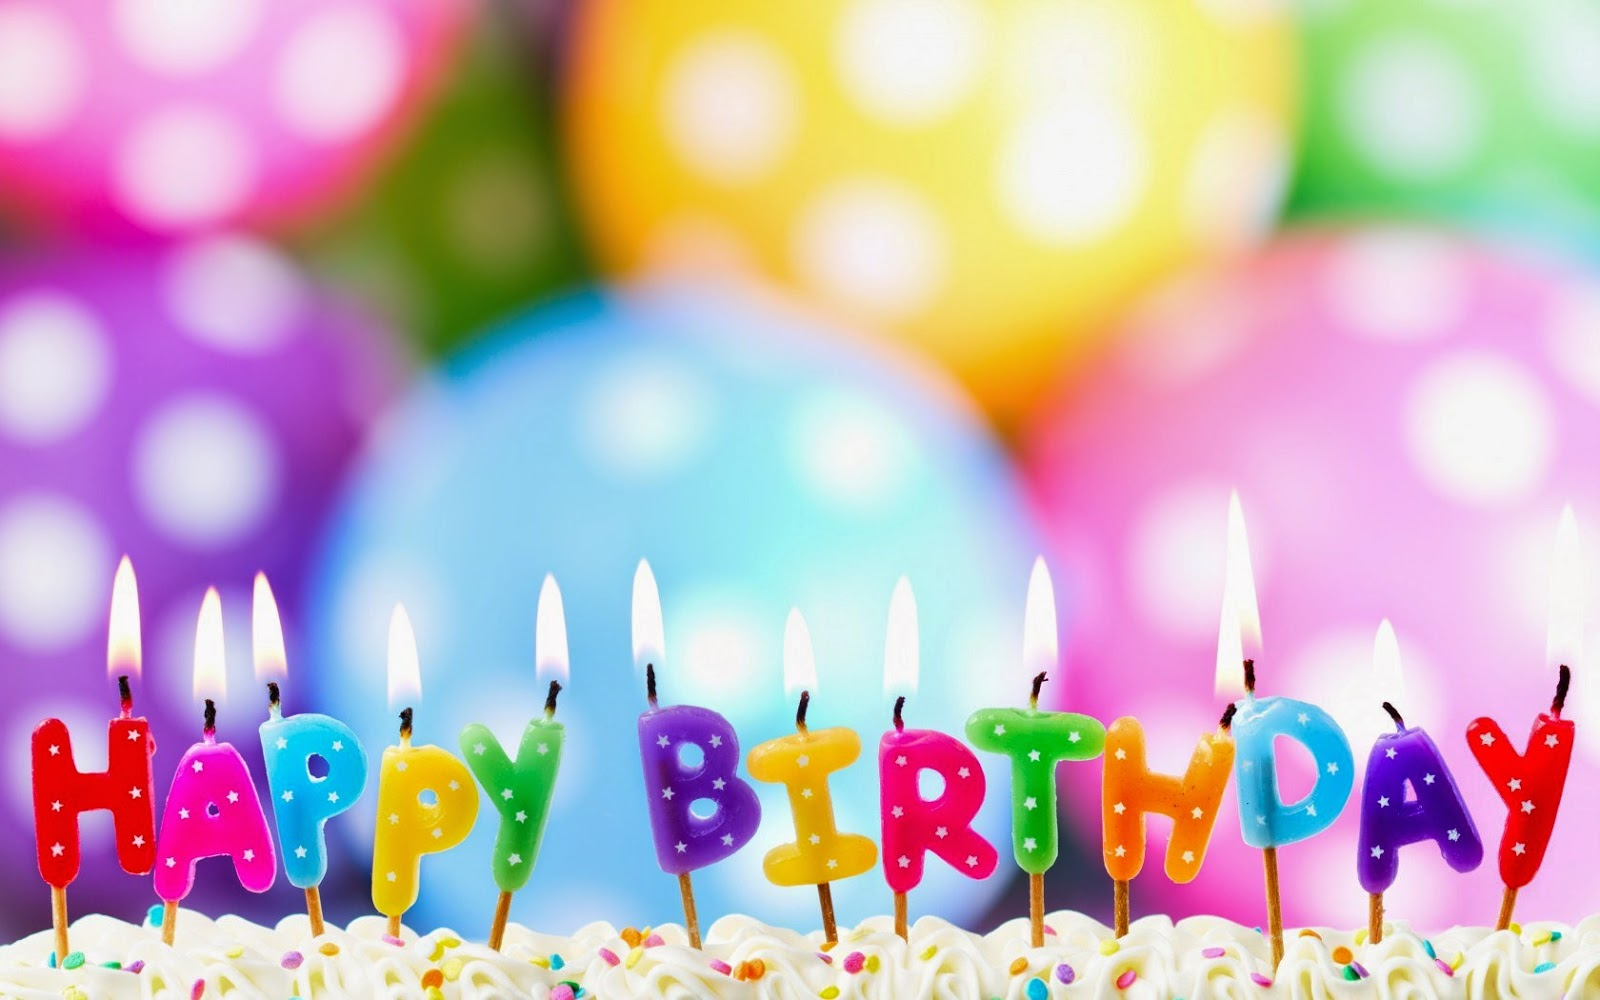 Happy birthday wishes and quotes - Best Birthday Wishes Quotes Happy Birthday